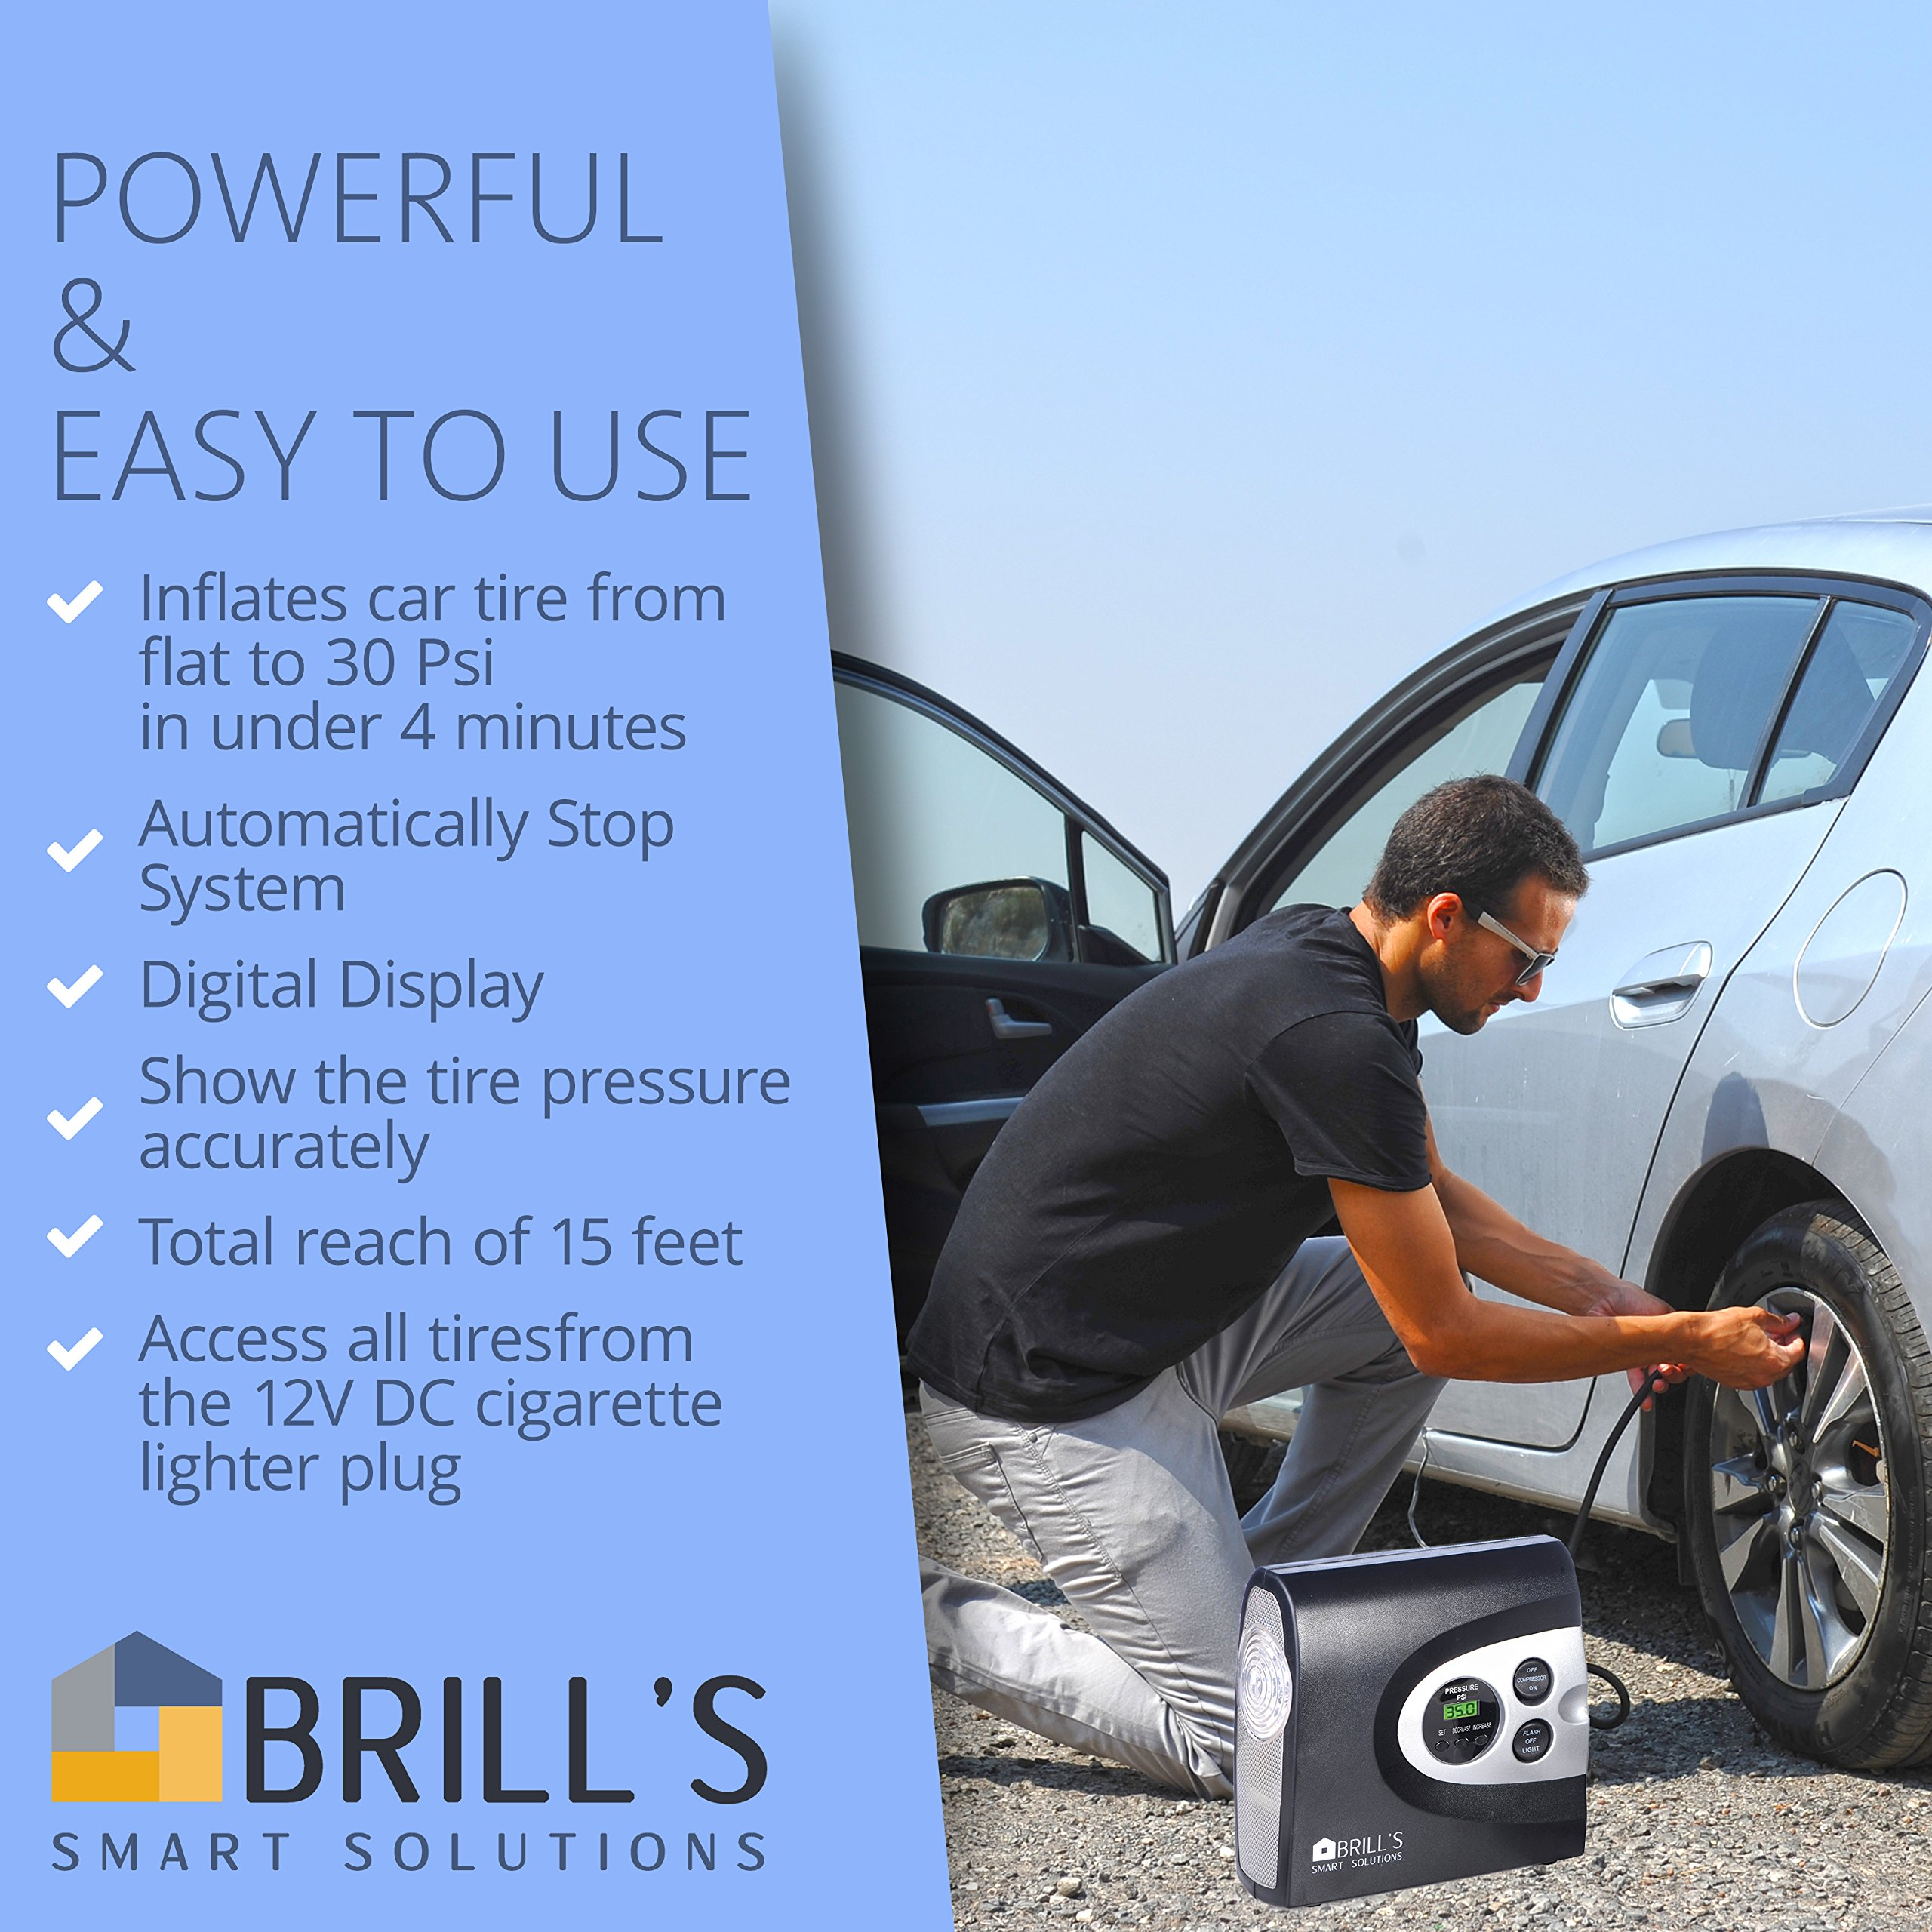 BRILL'S 12V DC Portable Tire Inflator Pump, 150 Psi Electric Air Compressor for Cars, Bikes, Motorcycles and Balls. Carry Case and USB Car Charge Included by BRILL'S SMART SOLUTIONS (Image #3)